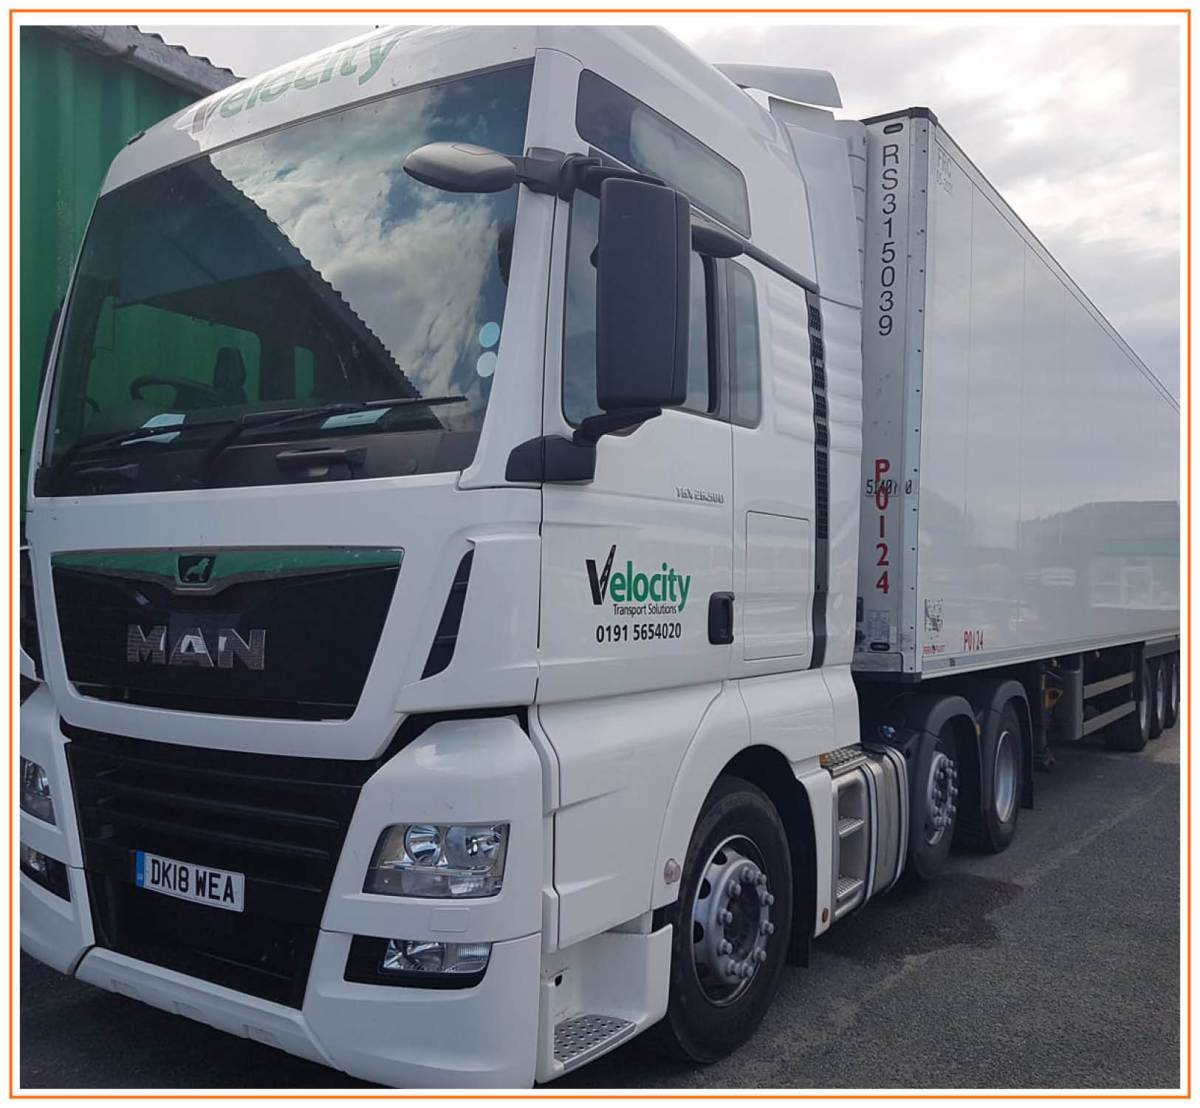 https://i2.wp.com/haultech.co.uk/wp-content/uploads/2020/03/Velocity-Transport-Solutions-Speed-to-Operational-Efficiency-with-HaulTech.jpg?fit=1200%2C1108&ssl=1